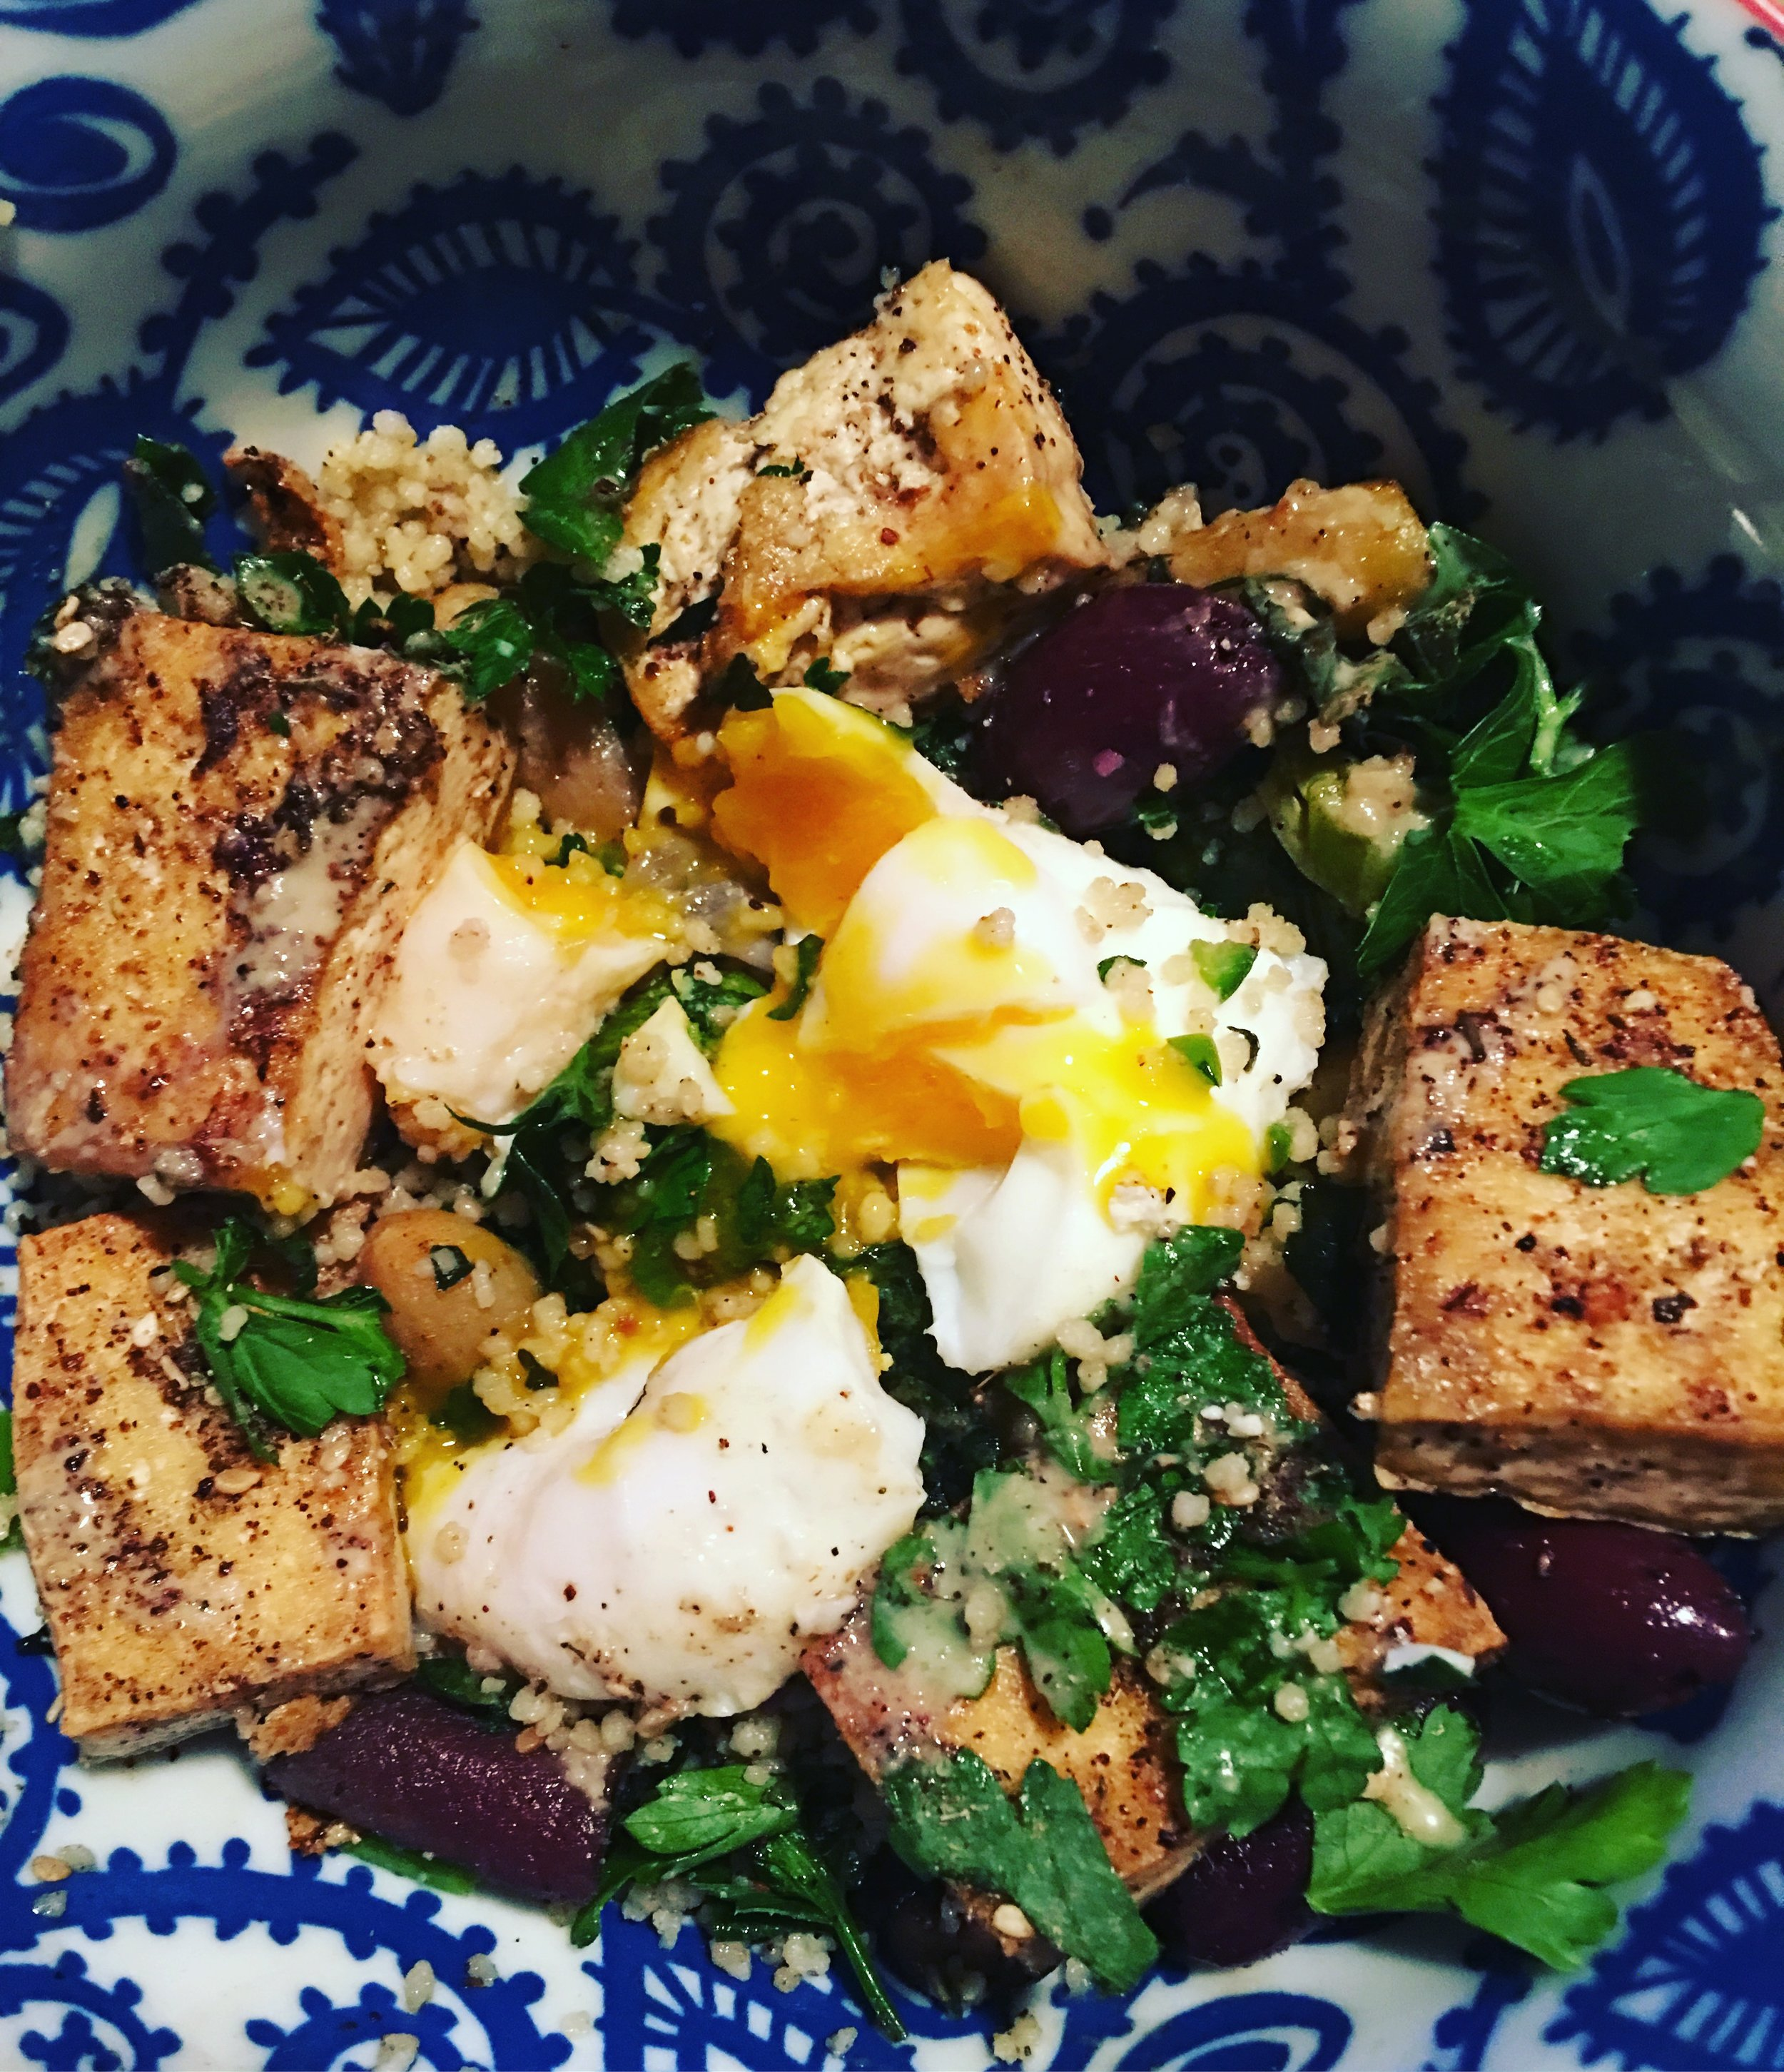 Berbere Veggies Leftover Remix   I love it when leftovers are better than the original: What was left of Variation #3, along with pan-fried za'atar tofu, kalamata olives, poached egg and tahini. The best version yet!